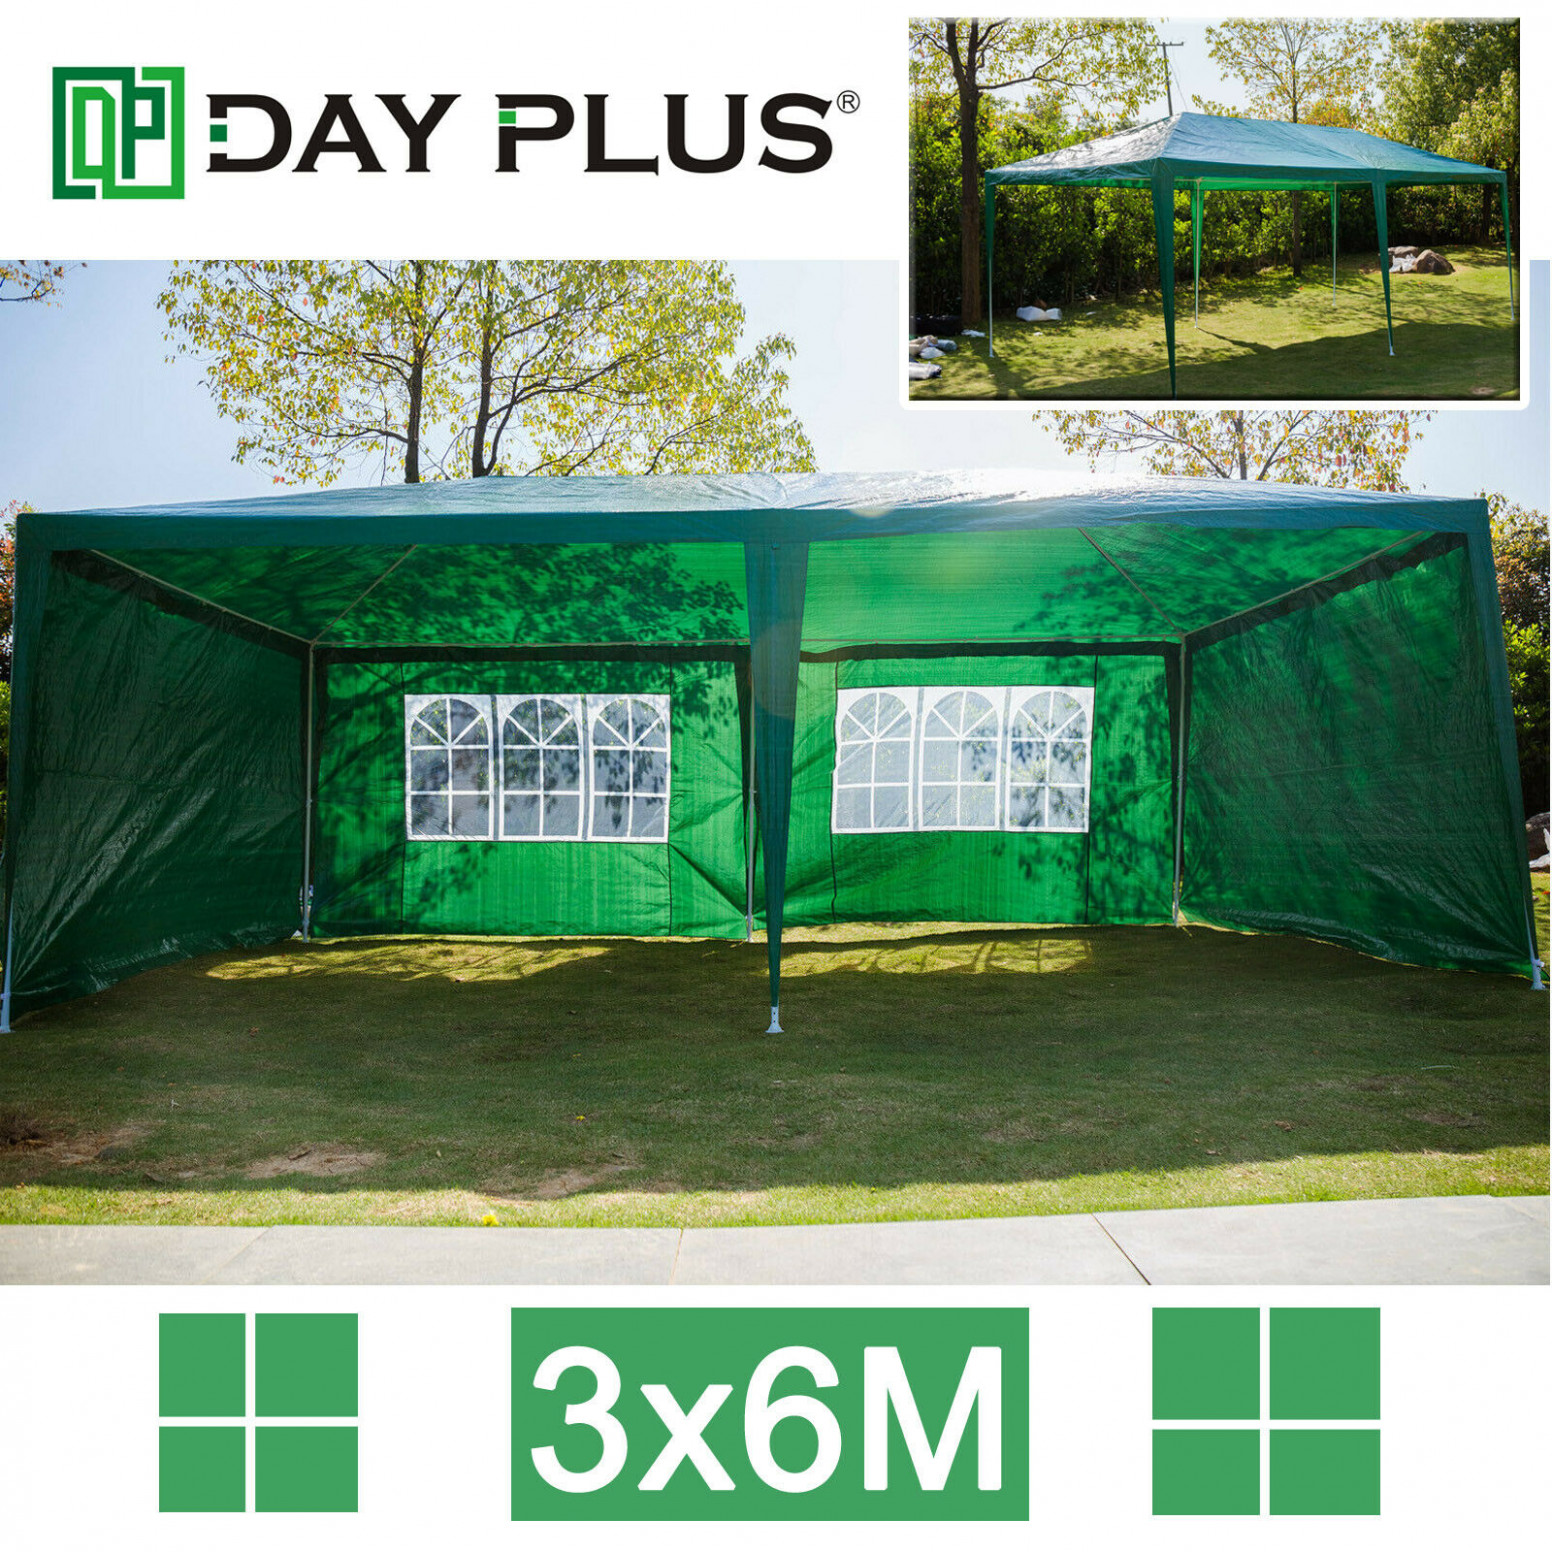 Details About 10X10M Outdoor Car Canopy Portable Cover 1100G Gazebo Garage Shelter Carport Tent Carport Canopy Northern Ireland